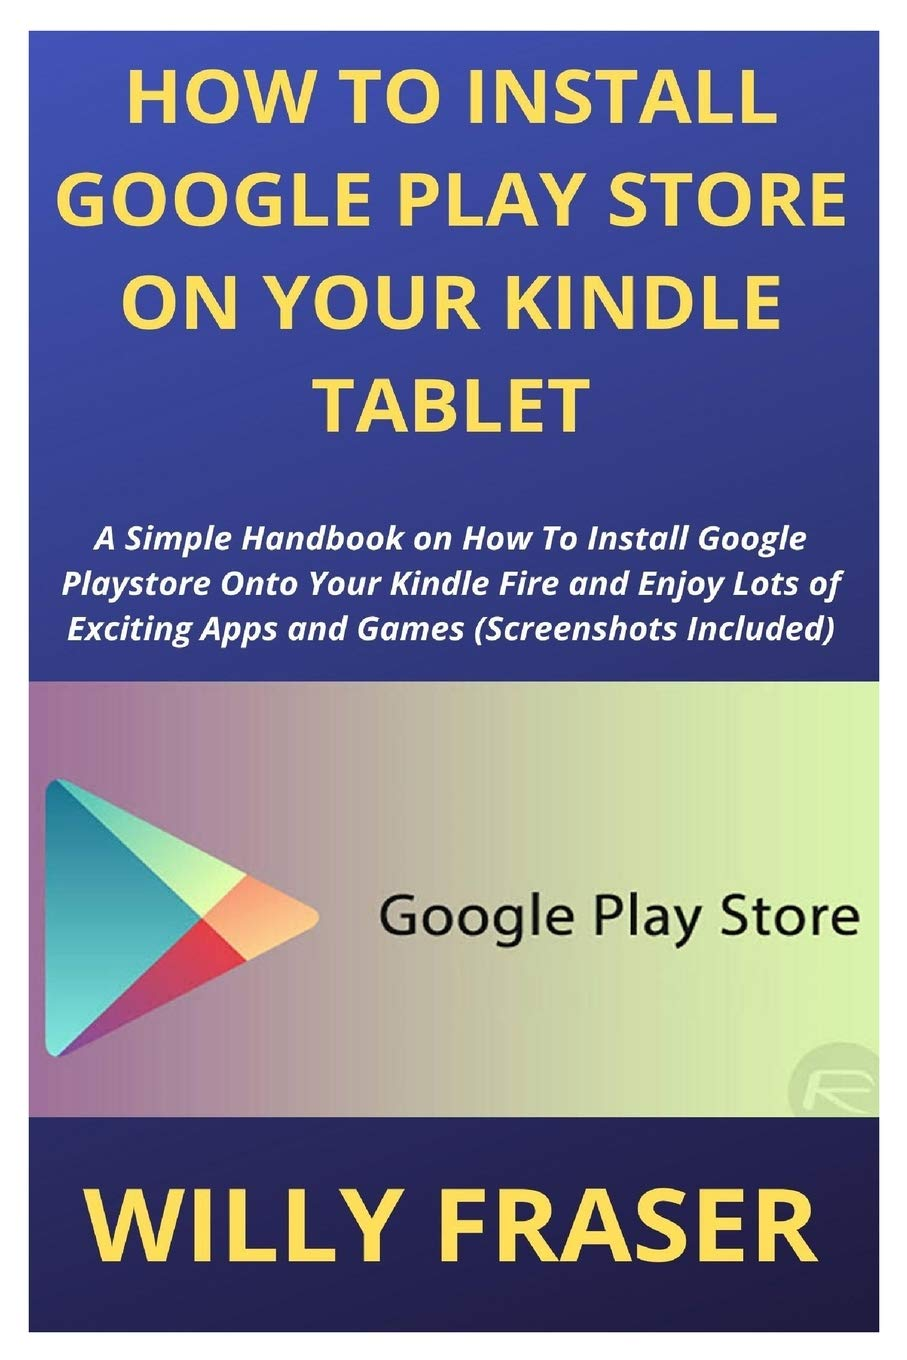 How to Install Google Play Store on Your Kindle Tablet: A Simple Handbook on How To Install Google Playstore Onto Your Kindle Fire and Enjoy Lots of Exciting Apps and Games